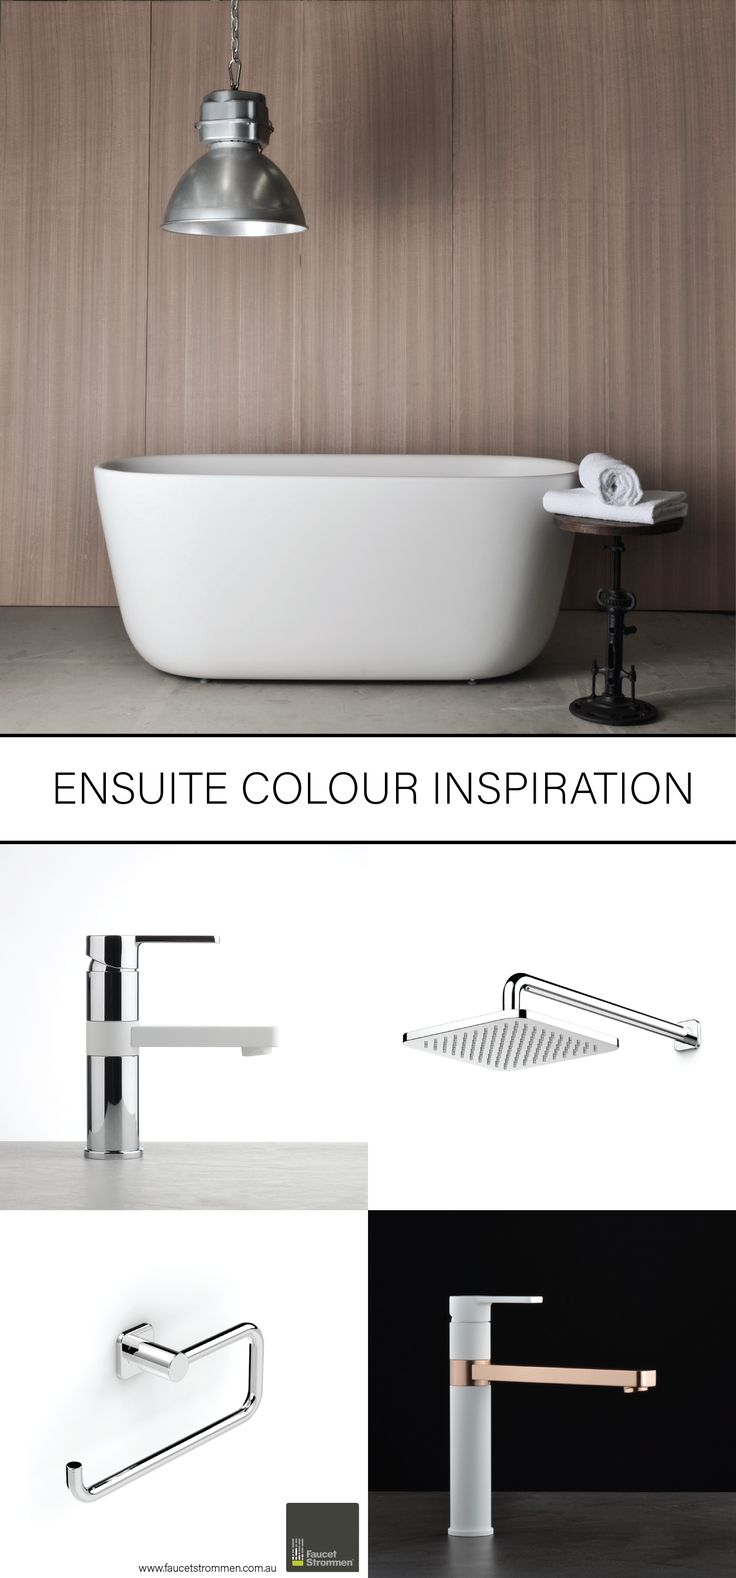 It's always a test to create the perfect ensuite if you have limited space. Make sure that every product works towards your colour scheme and overall style; one mismatched product can throw the whole look. That's why Faucet Strommen is offering colour combinations over a vast range of our products. View our finishes online at www.faucetstrommen.com.au #faucetstrommen